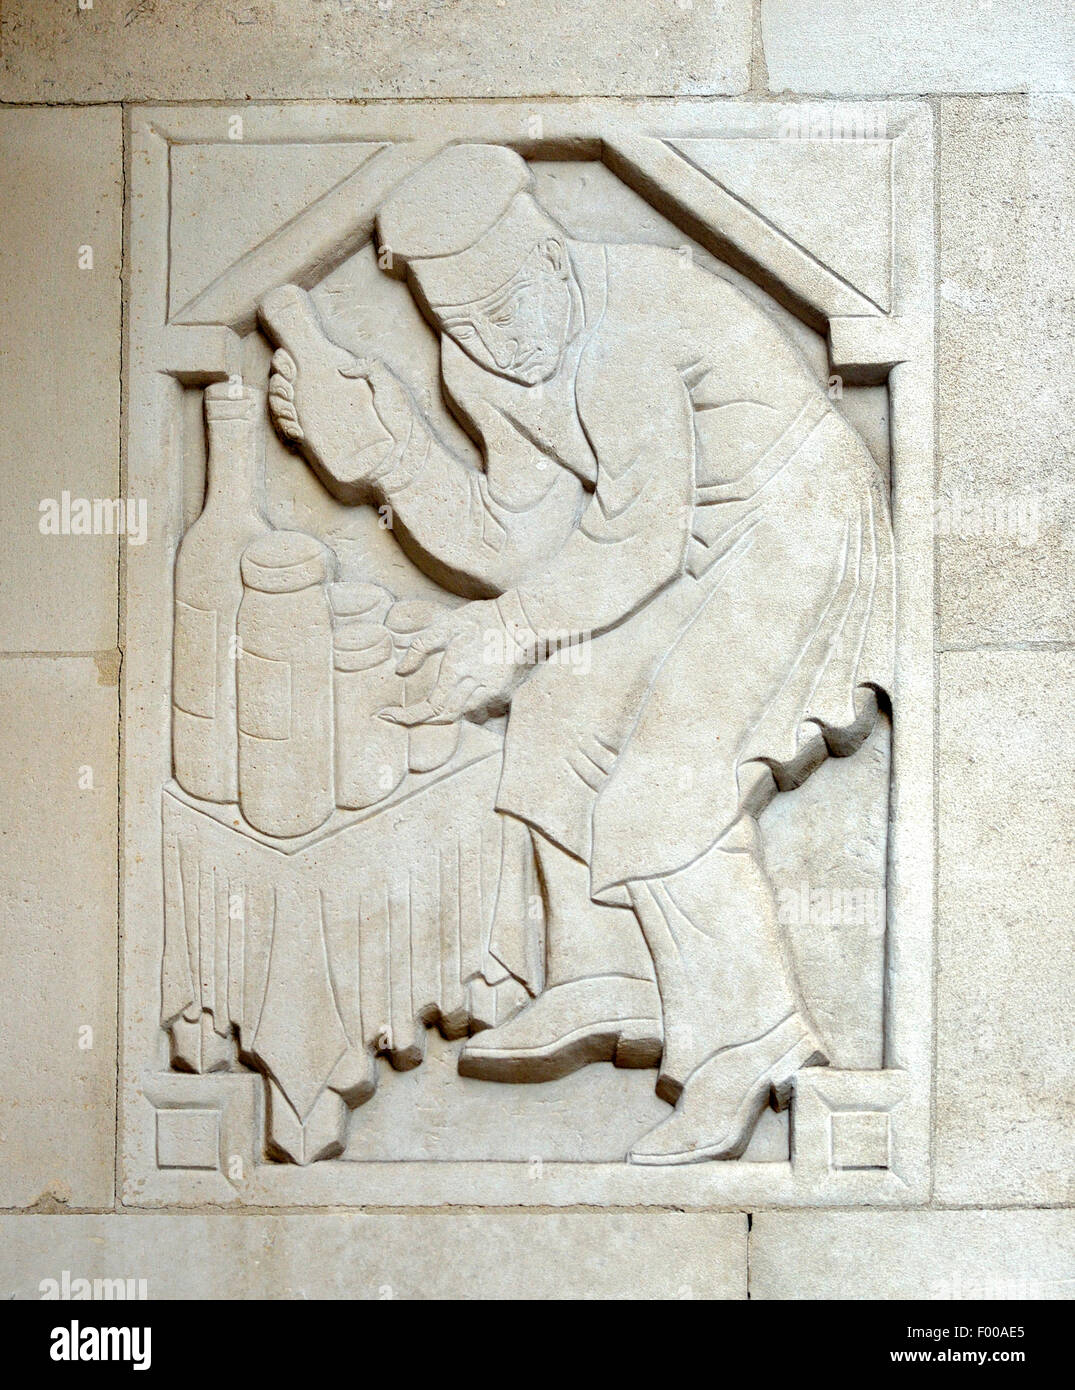 London, England, UK. College for the Distributive Trades, Charing Cross Road. Stone carving by Adolfine Ryland  - Stock Image